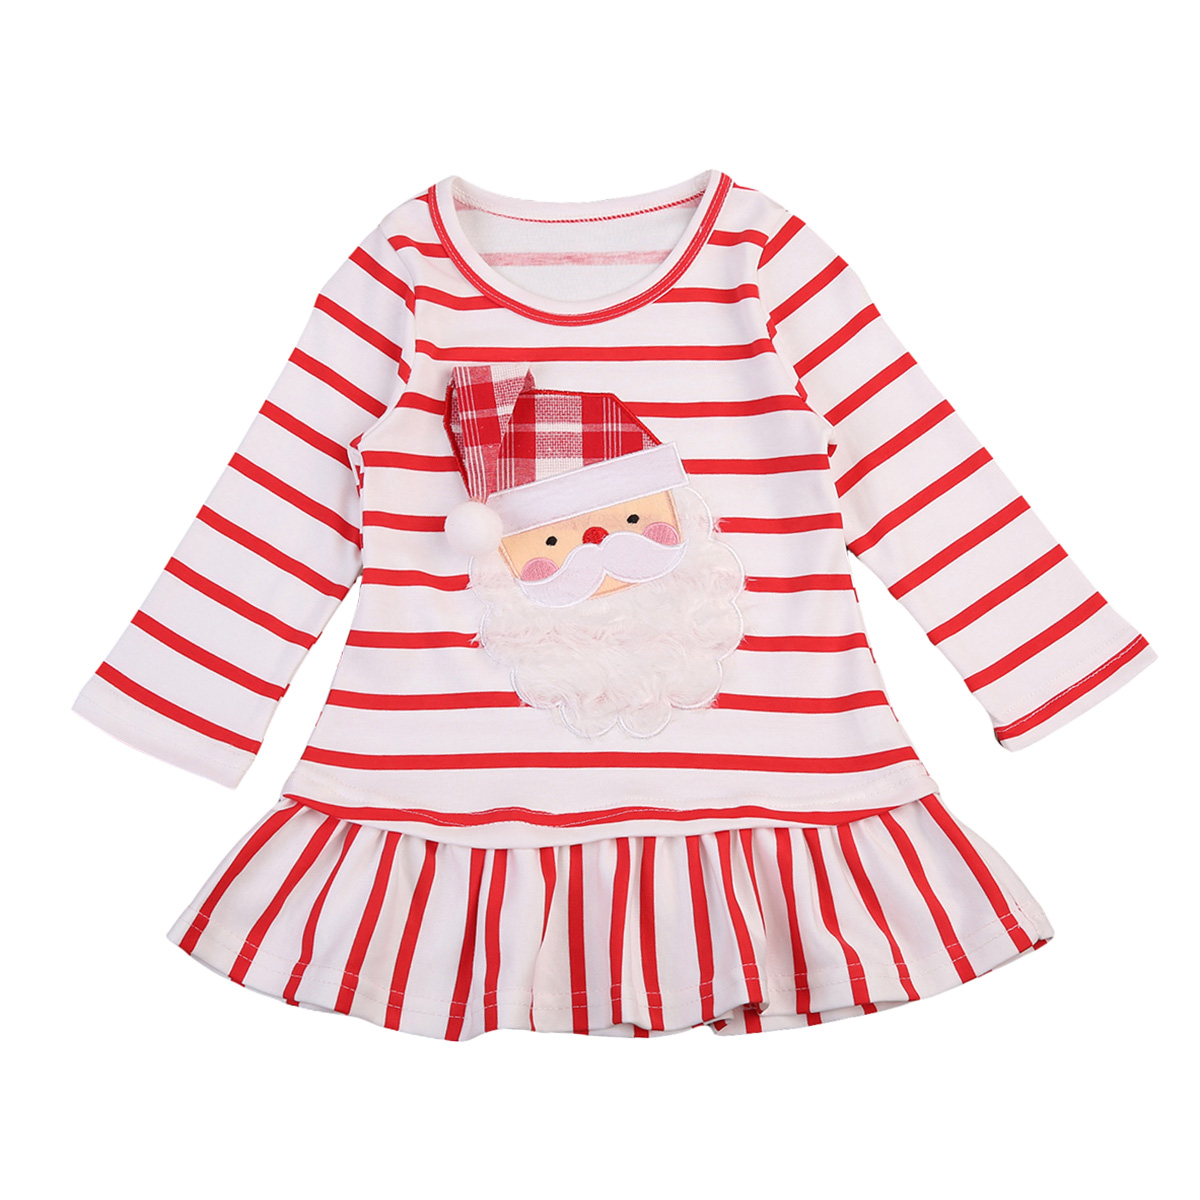 New Baby Girls Christmas Santa Claus Little Girls Cute Casual Xmas Striped Dress Clothes 0-5Y sr039 newborn baby clothes bebe baby girls and boys clothes christmas red and white party dress hat santa claus hat sliders